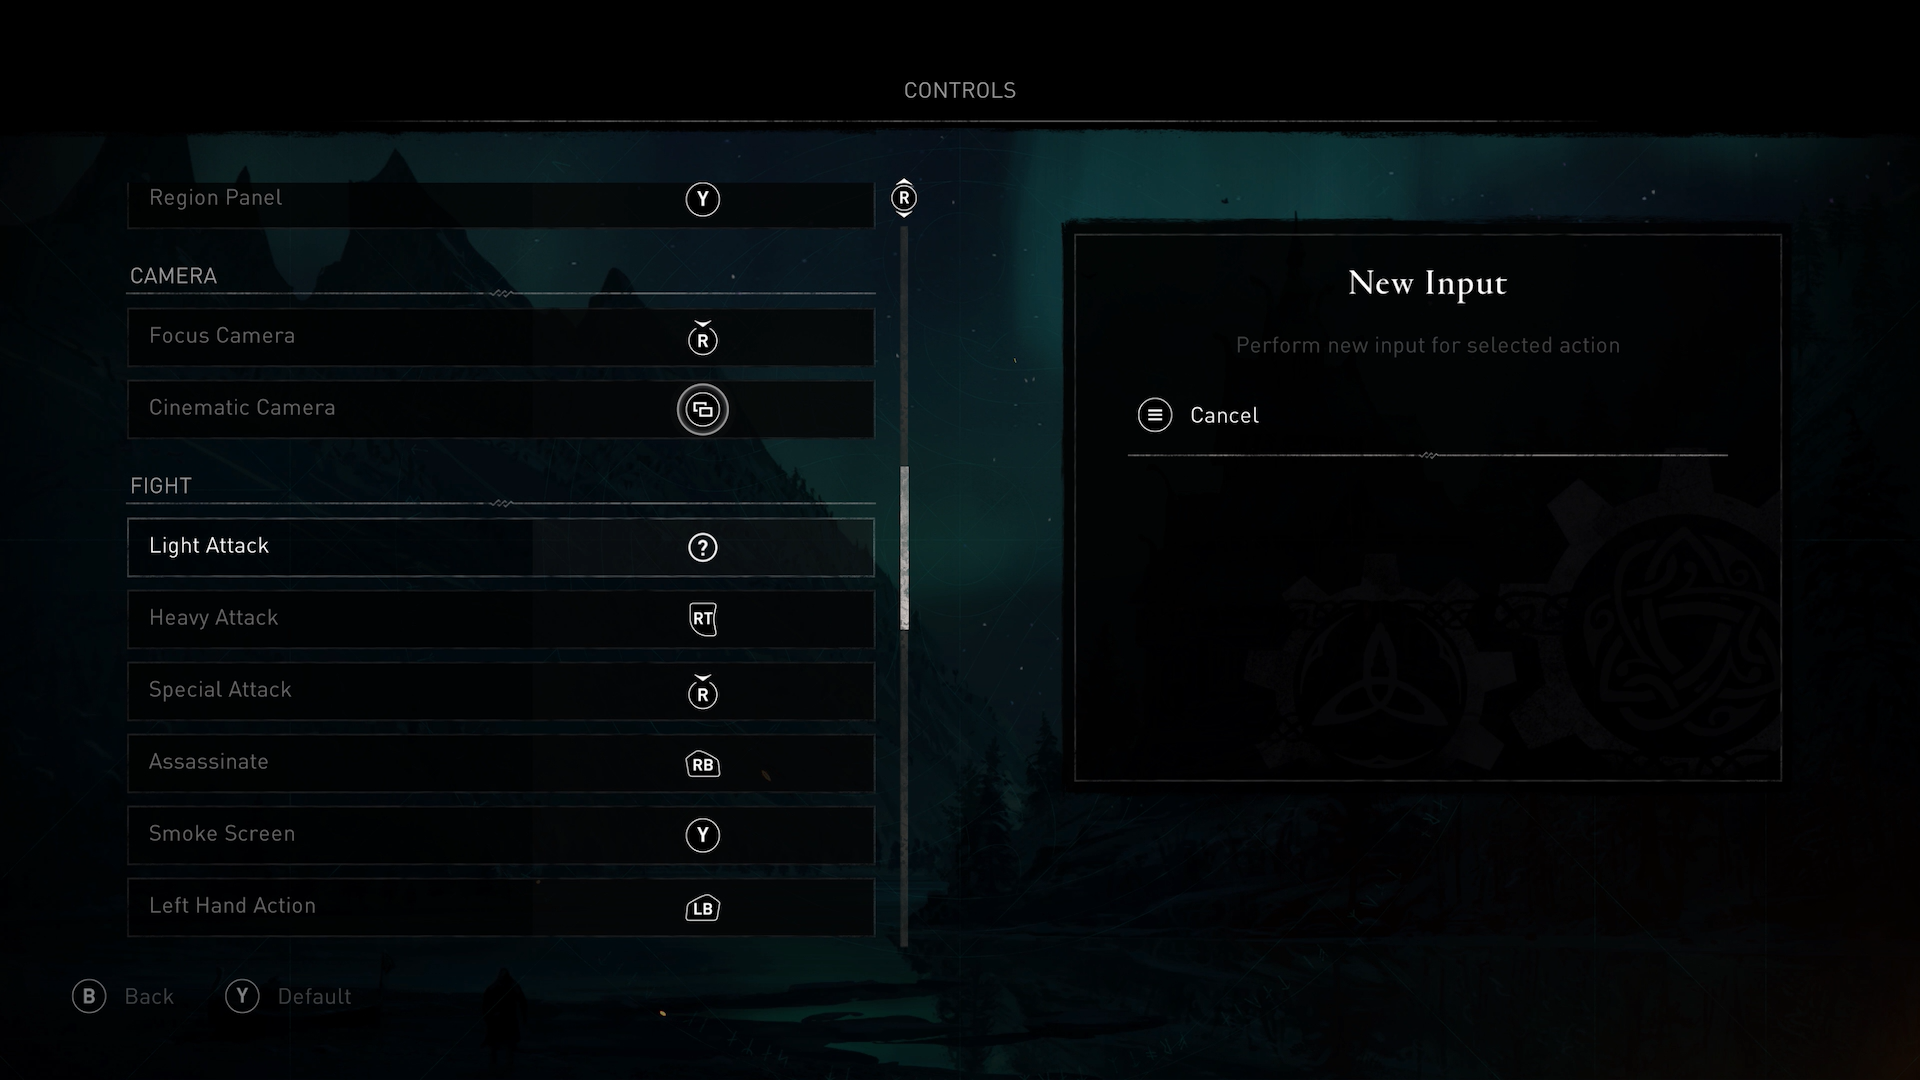 A screenshot showing the button remapping in Asassins Creed Valhalla.